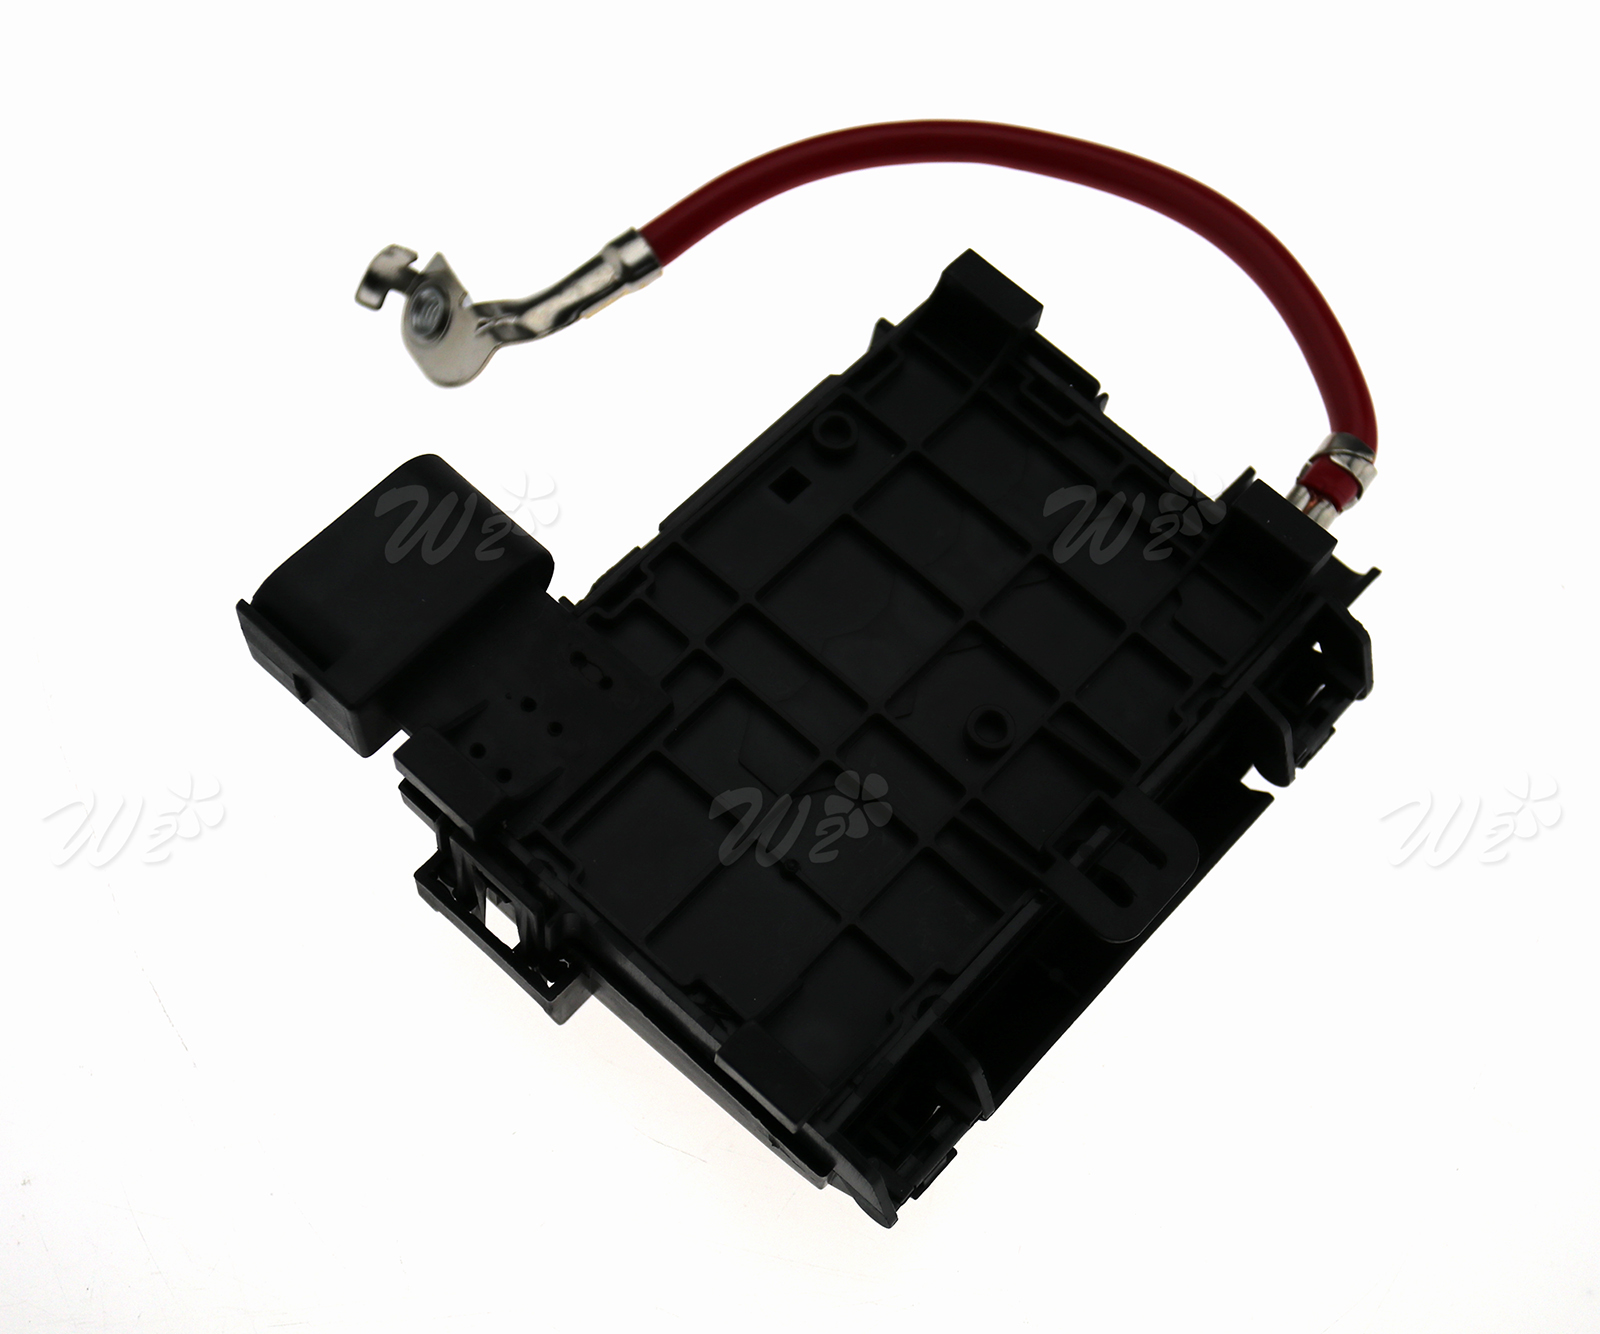 Fuse Box 3-Pin Battery Terminal For Volkswagen VW Golf Bora Jetta  Replacement